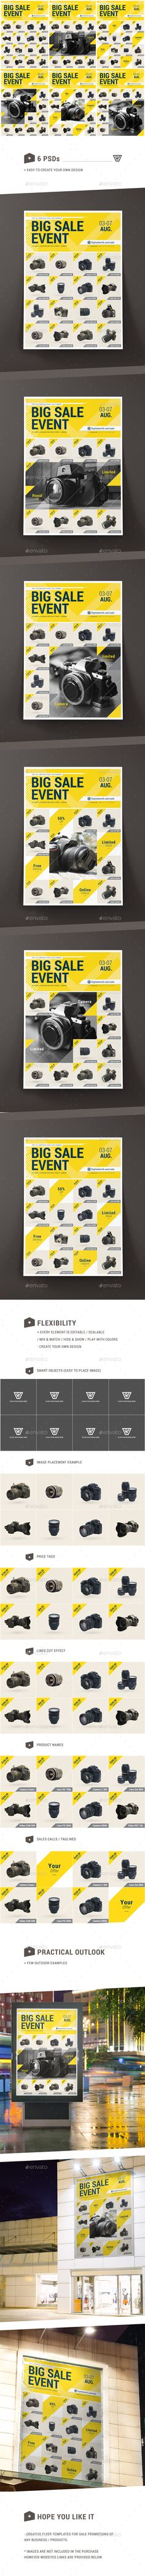 Sale Promotional Flyer Template PSD. Download here: http://graphicriver.net/item/sale-promotional-flyer/16766077?ref=ksioks